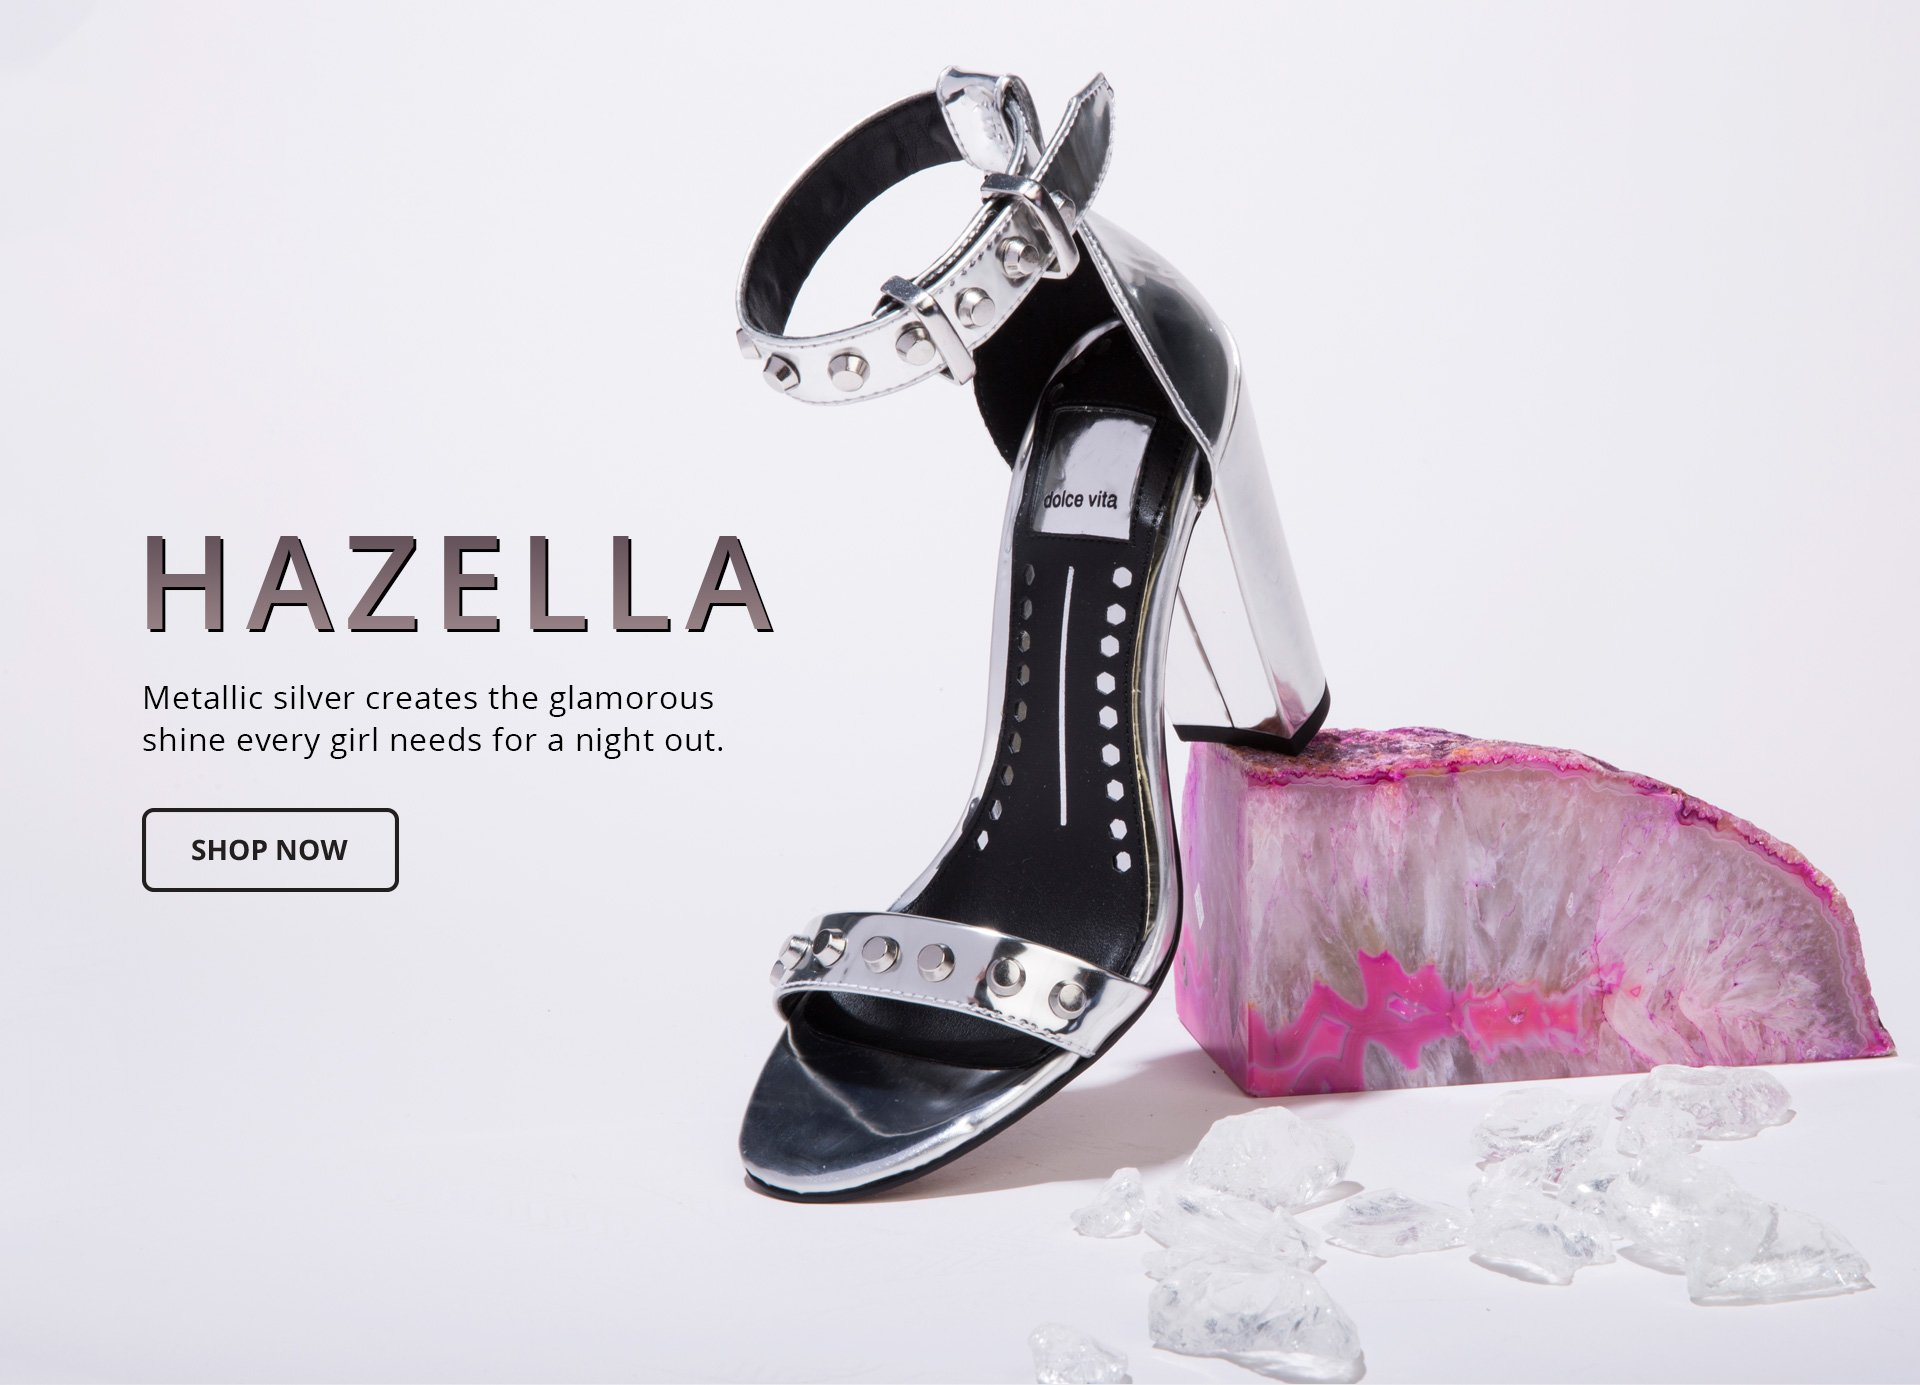 Hazella. Metallic silver creates the glamorous shine every girl needs for a night out. shop Now.